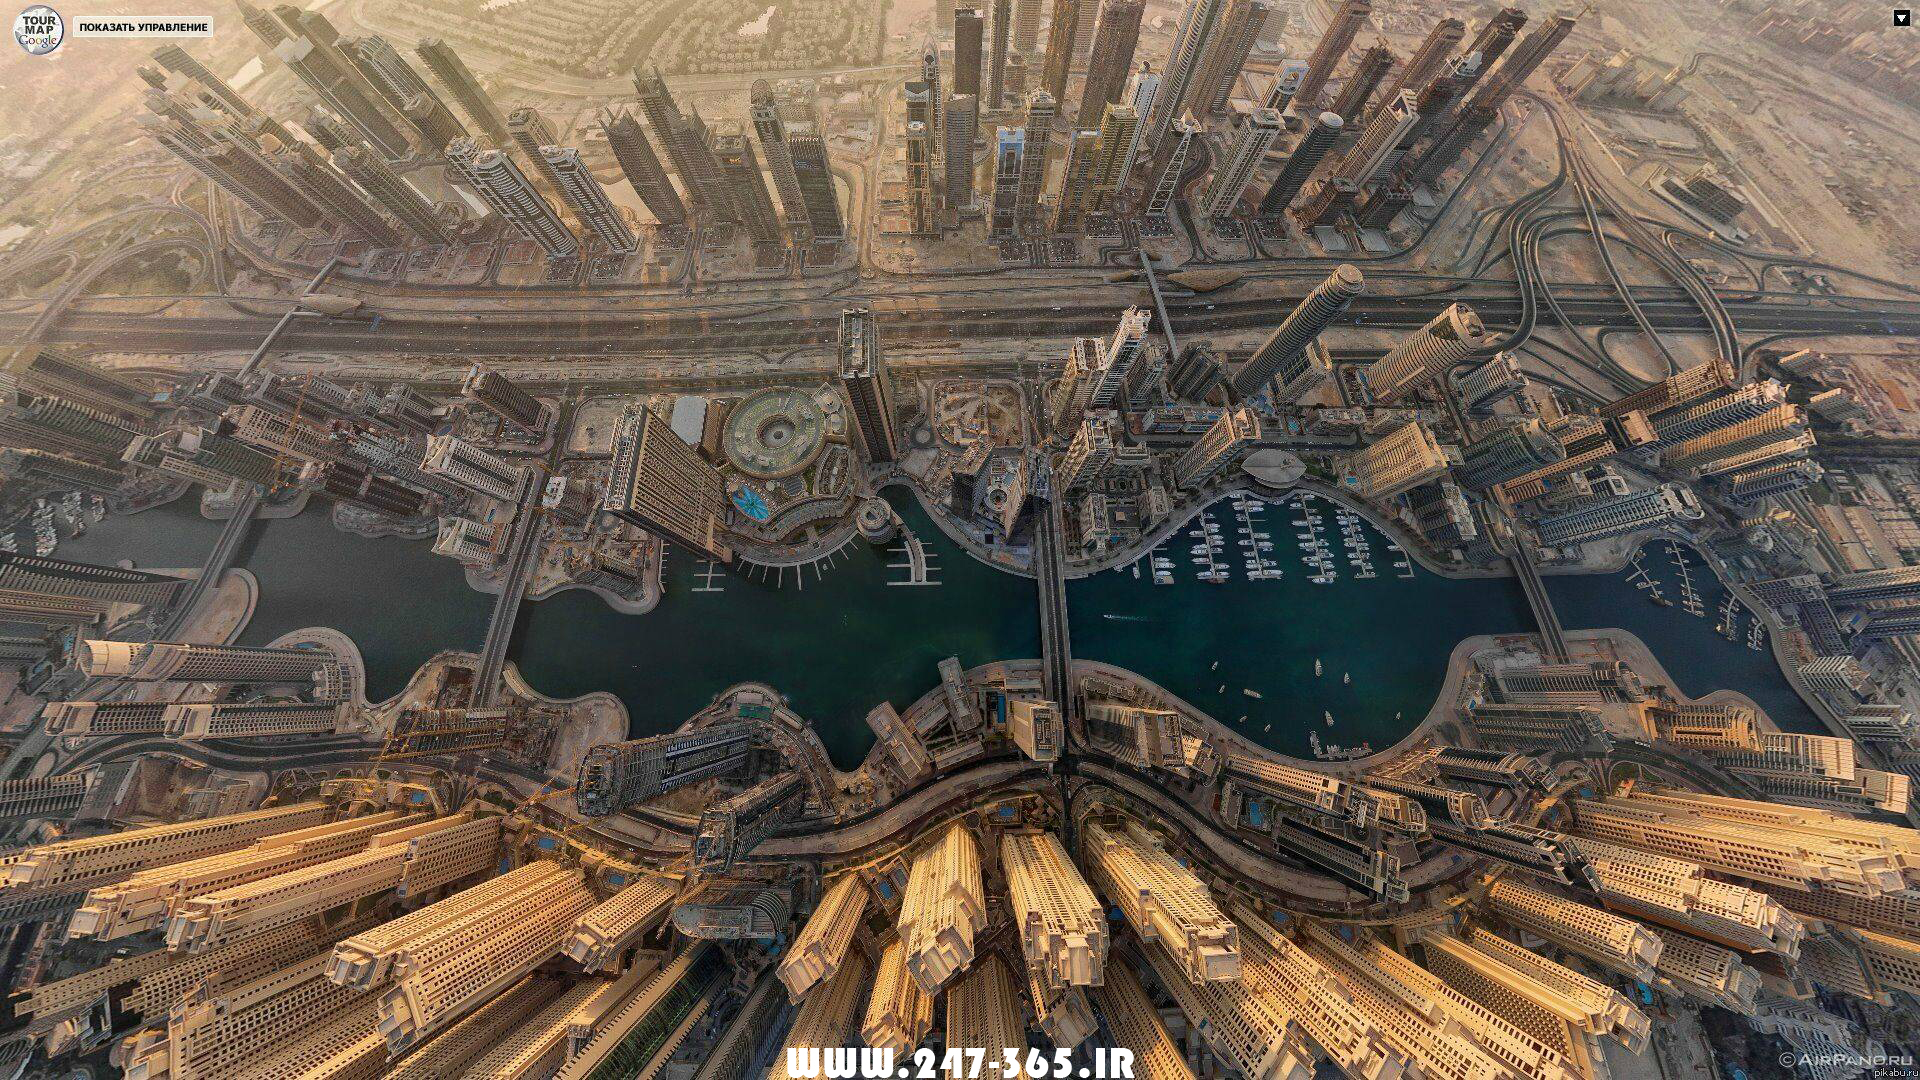 http://dl.247-365.ir/pic/tak_ax/Dubai_From_Above.jpg